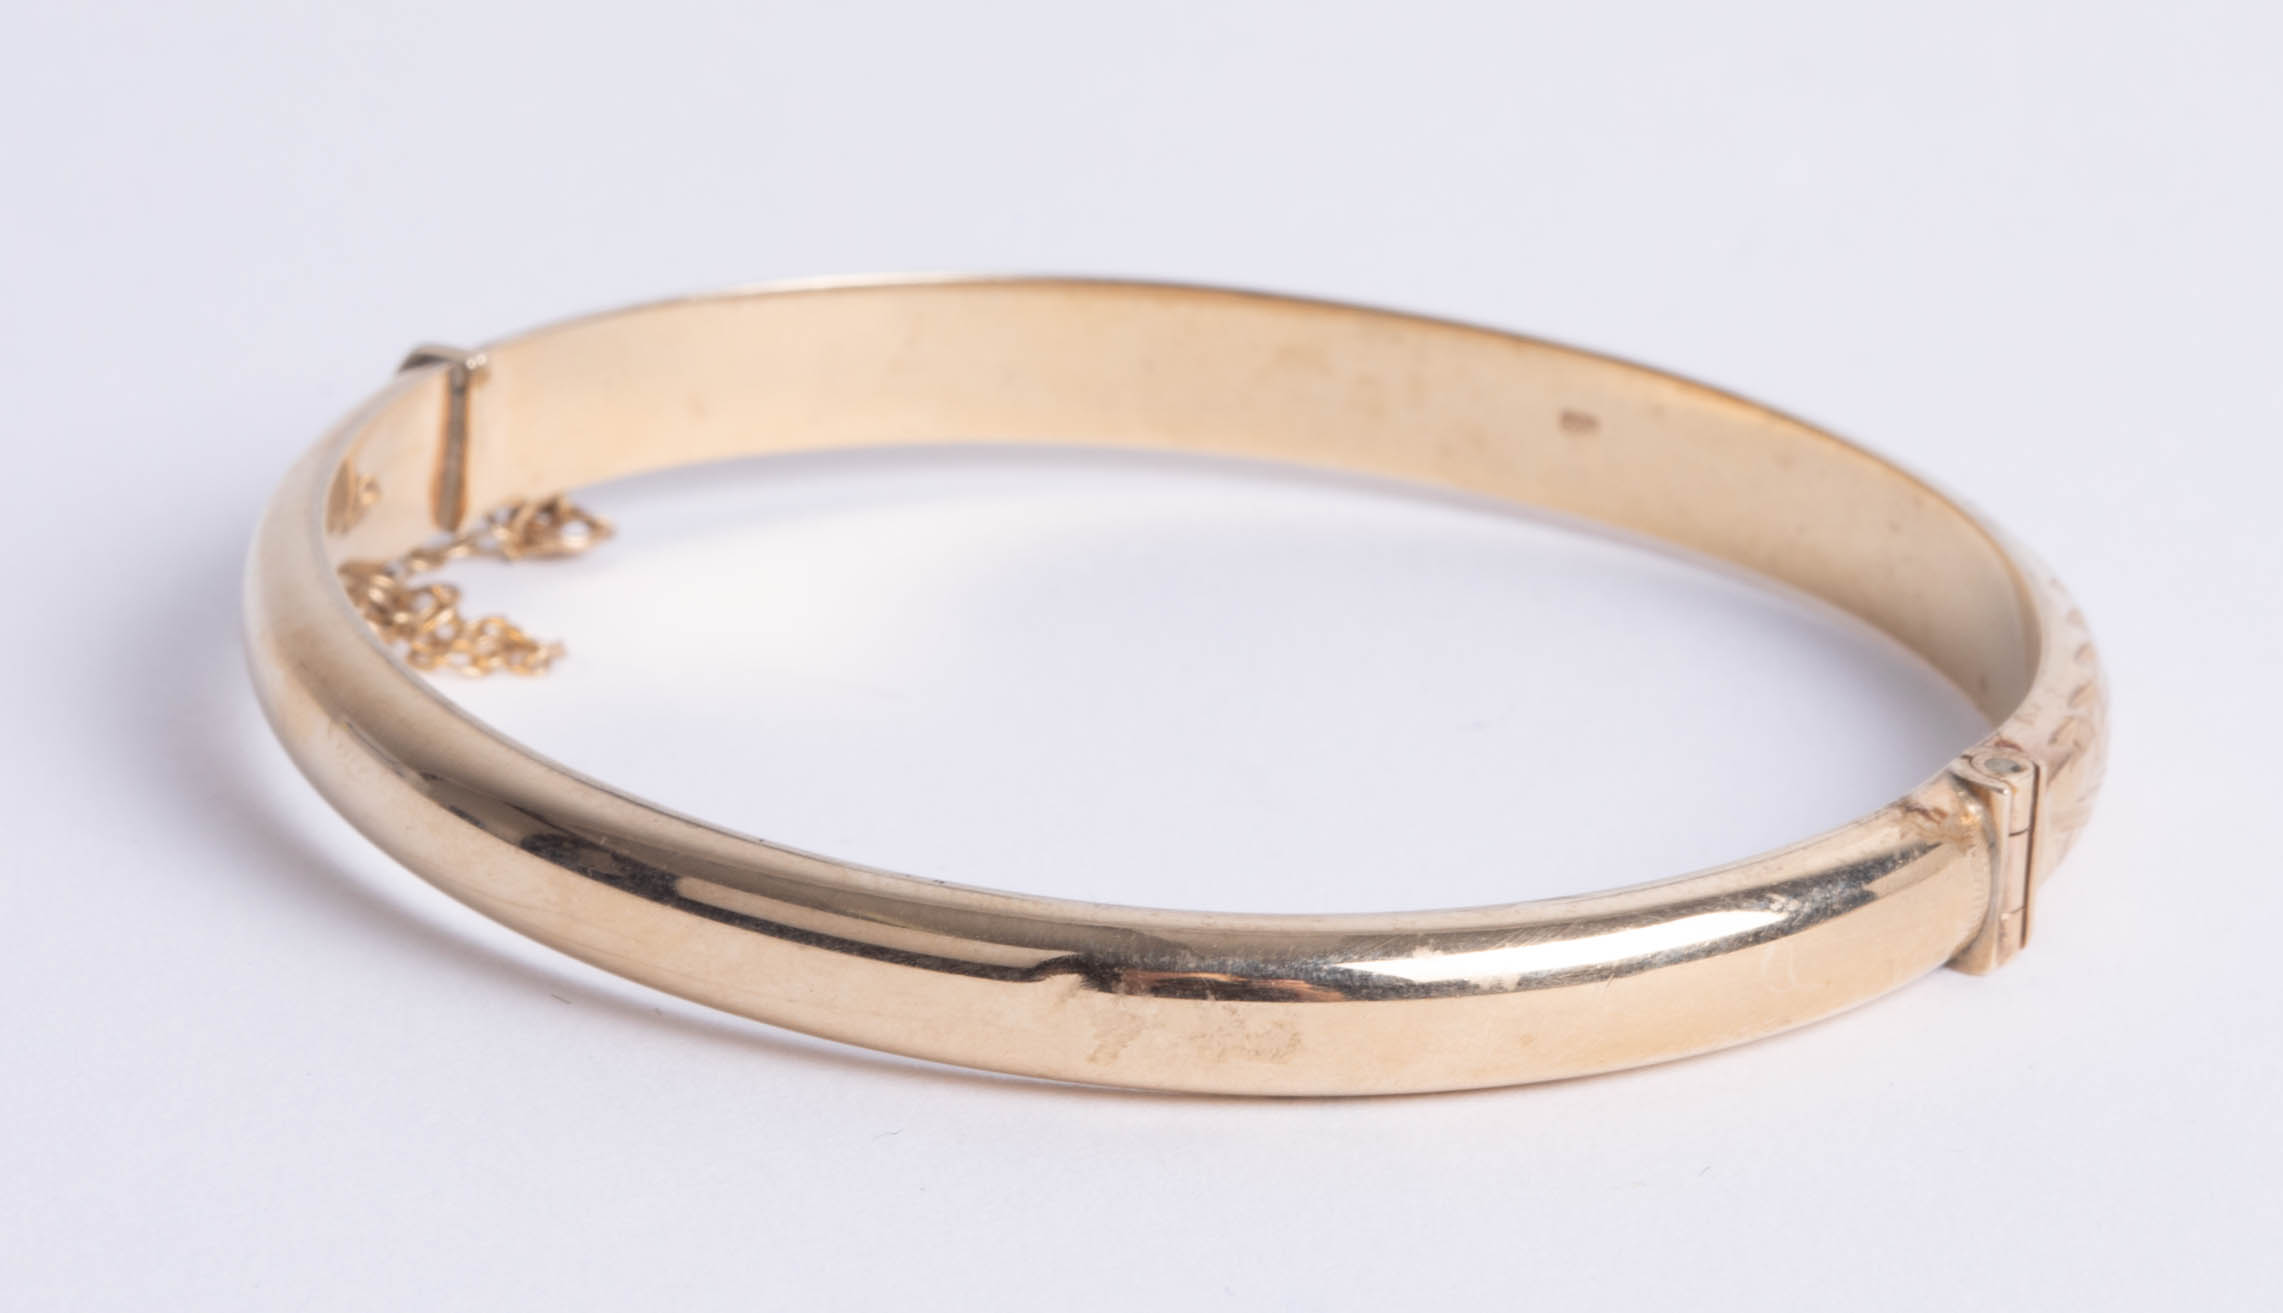 Lot 005 - A 9ct gold bangle, makers mark 'DLM', approx 8.80g.